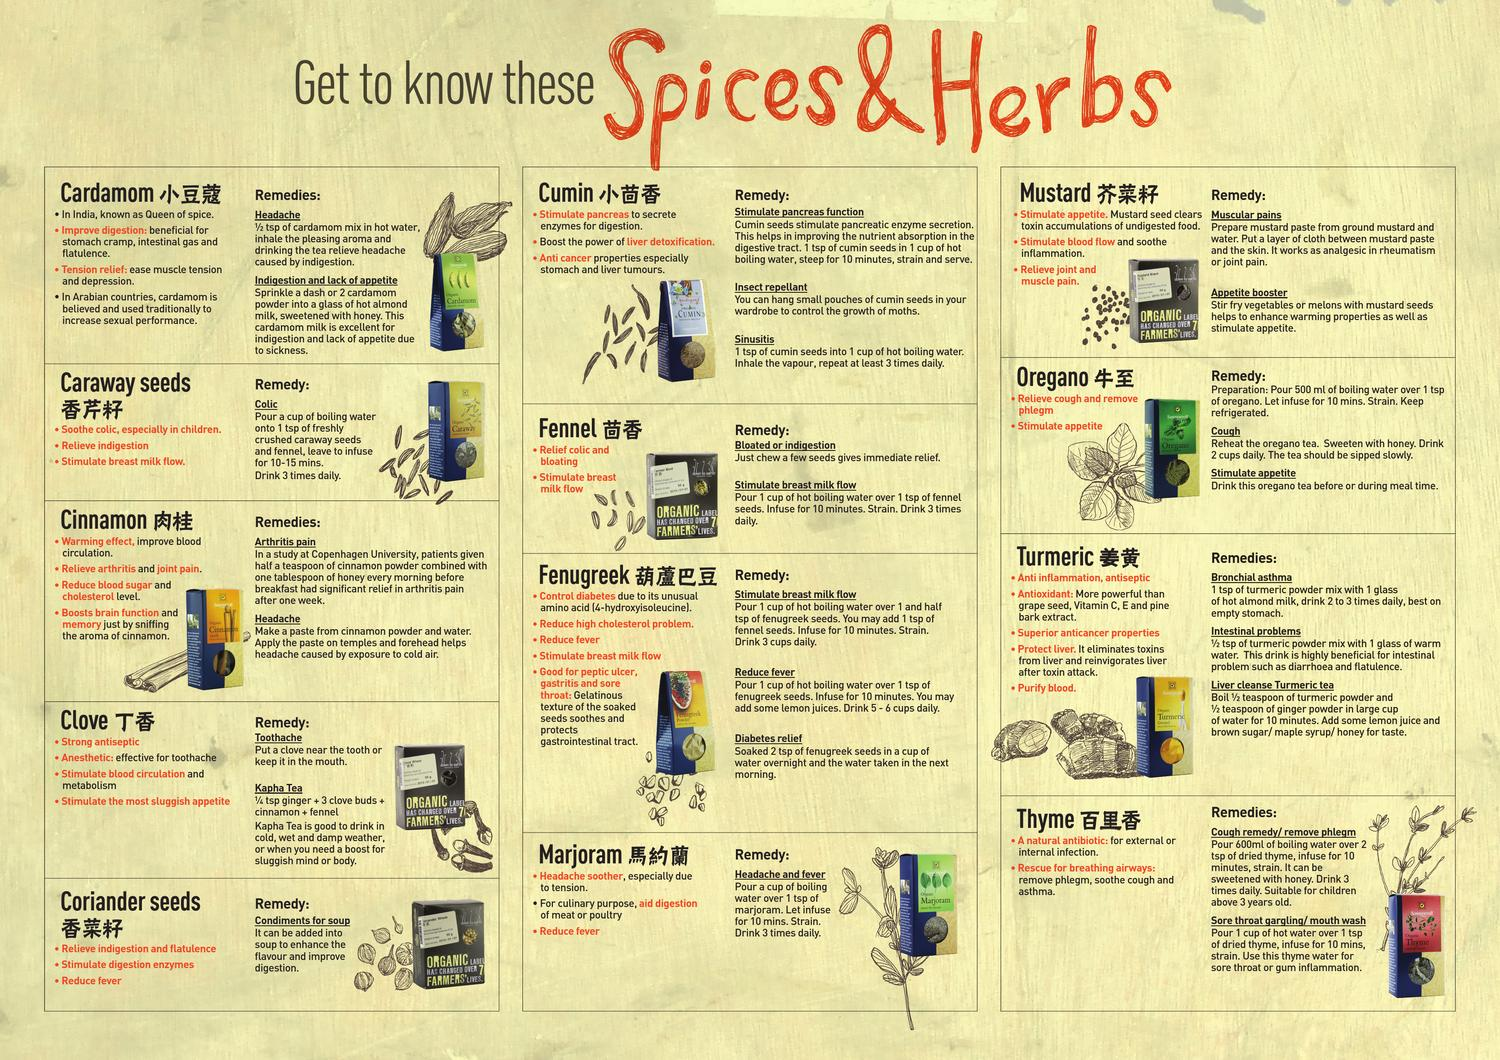 Spices & Herbs by Justlife Group Sdn Bhd - issuu